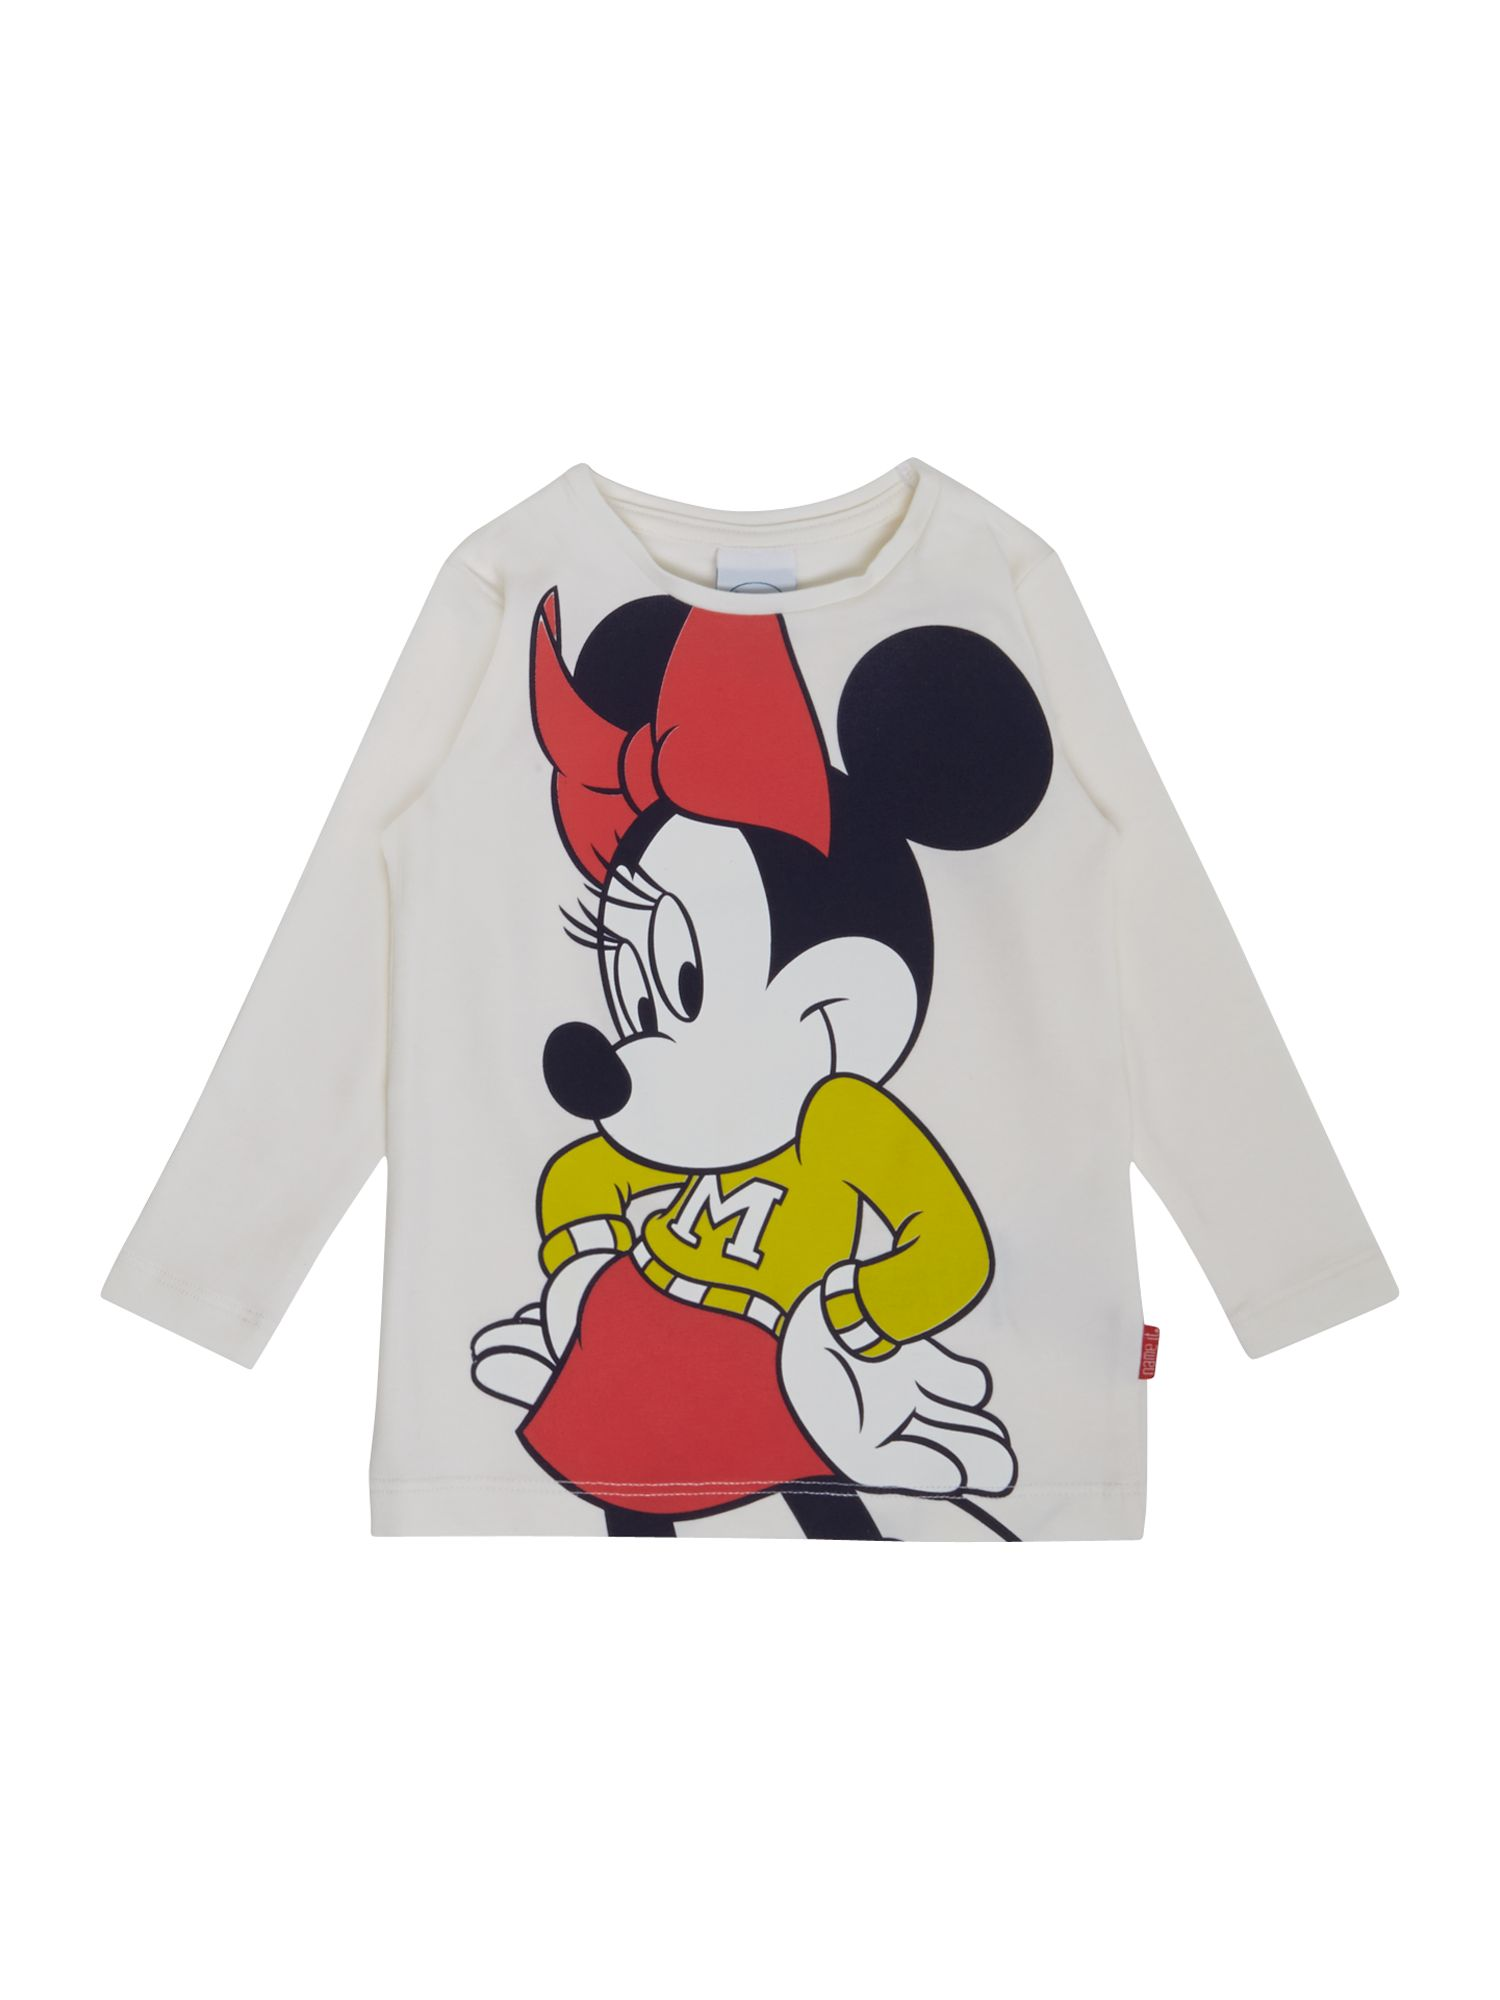 Girls Minnie Mouse t-shirt